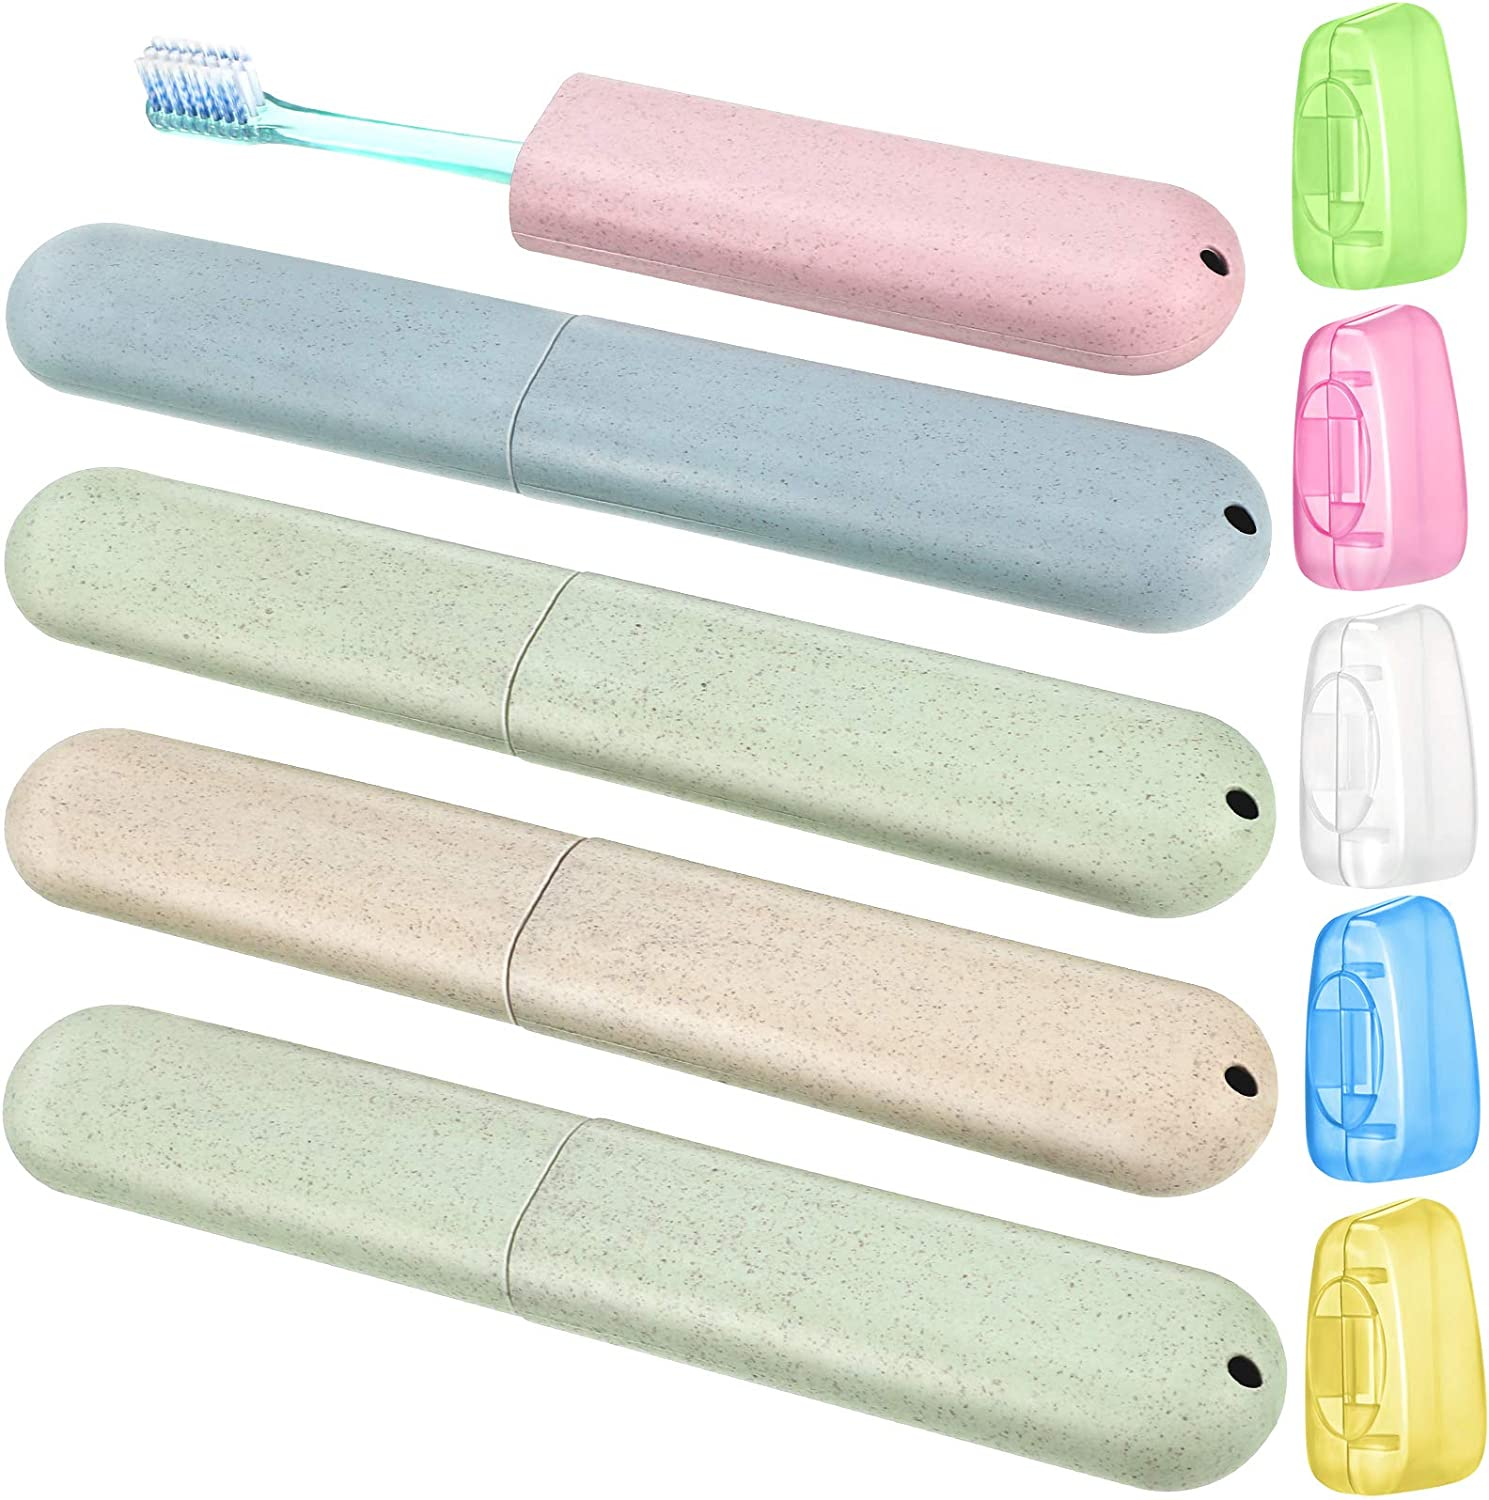 Toothbrush Holders Protective Cover Camping Travel *DEAL* LOT OF 10